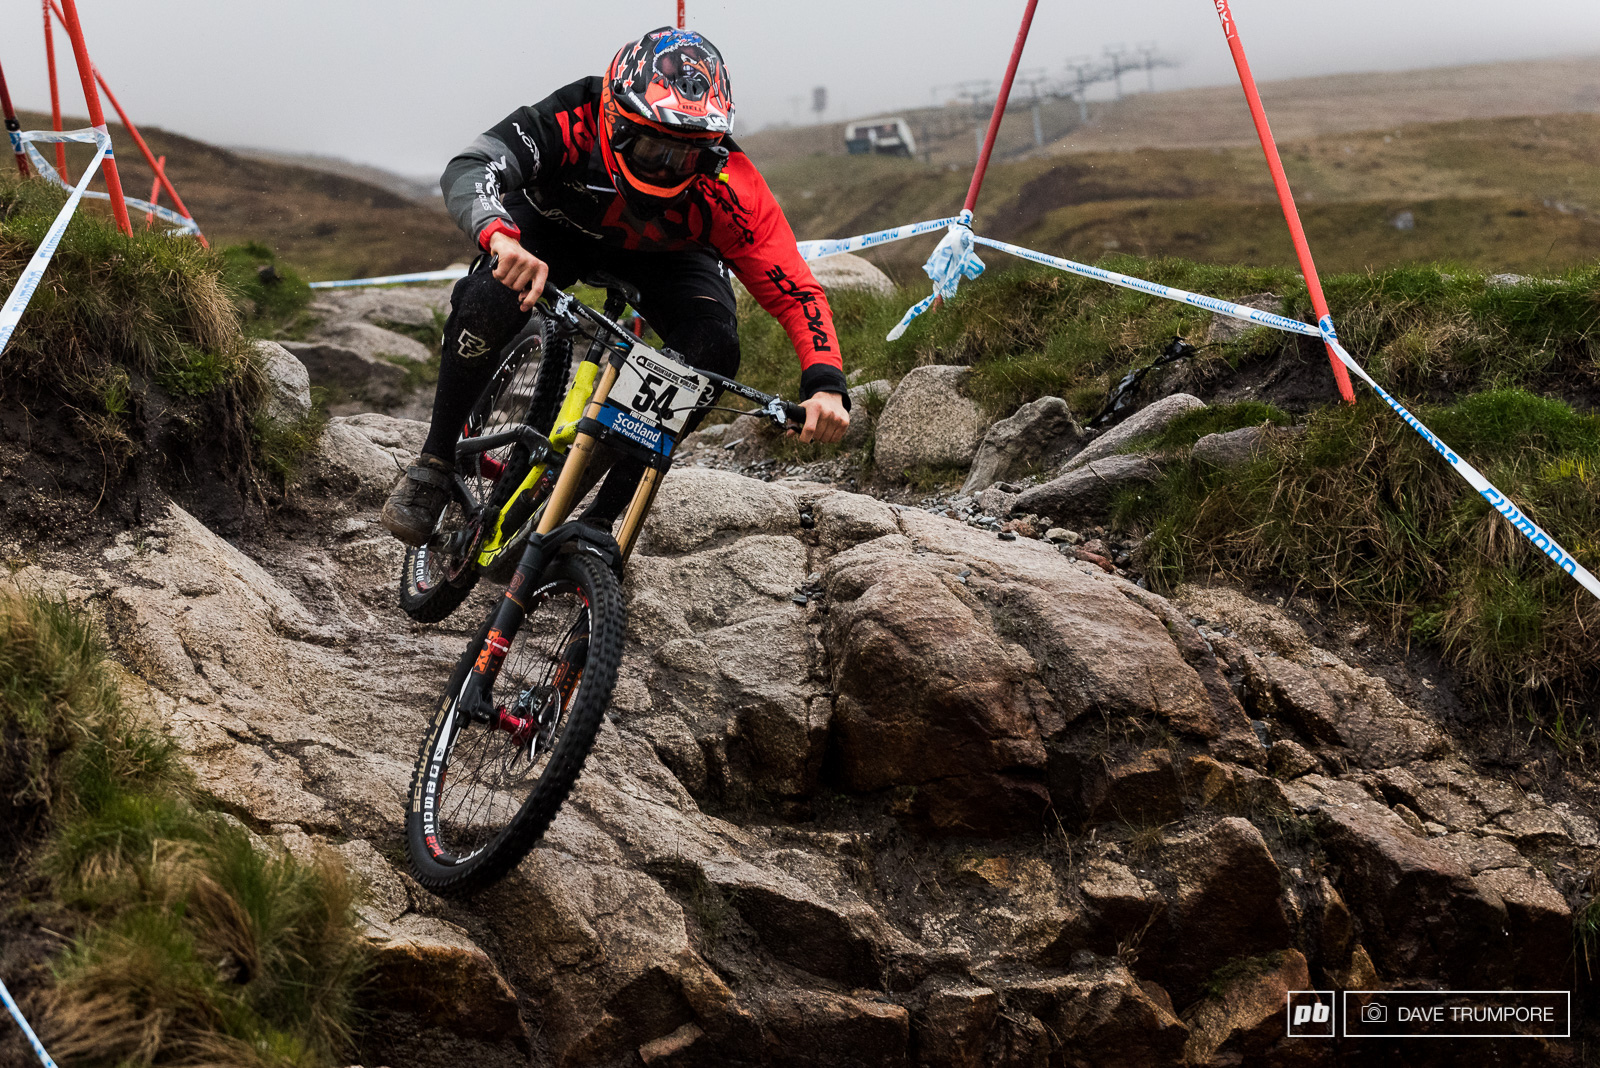 After a rough start to the season Sam Blenkinsop finally landed himself a spot of the podium and with it a much lower number plate for Leogang next weekend.